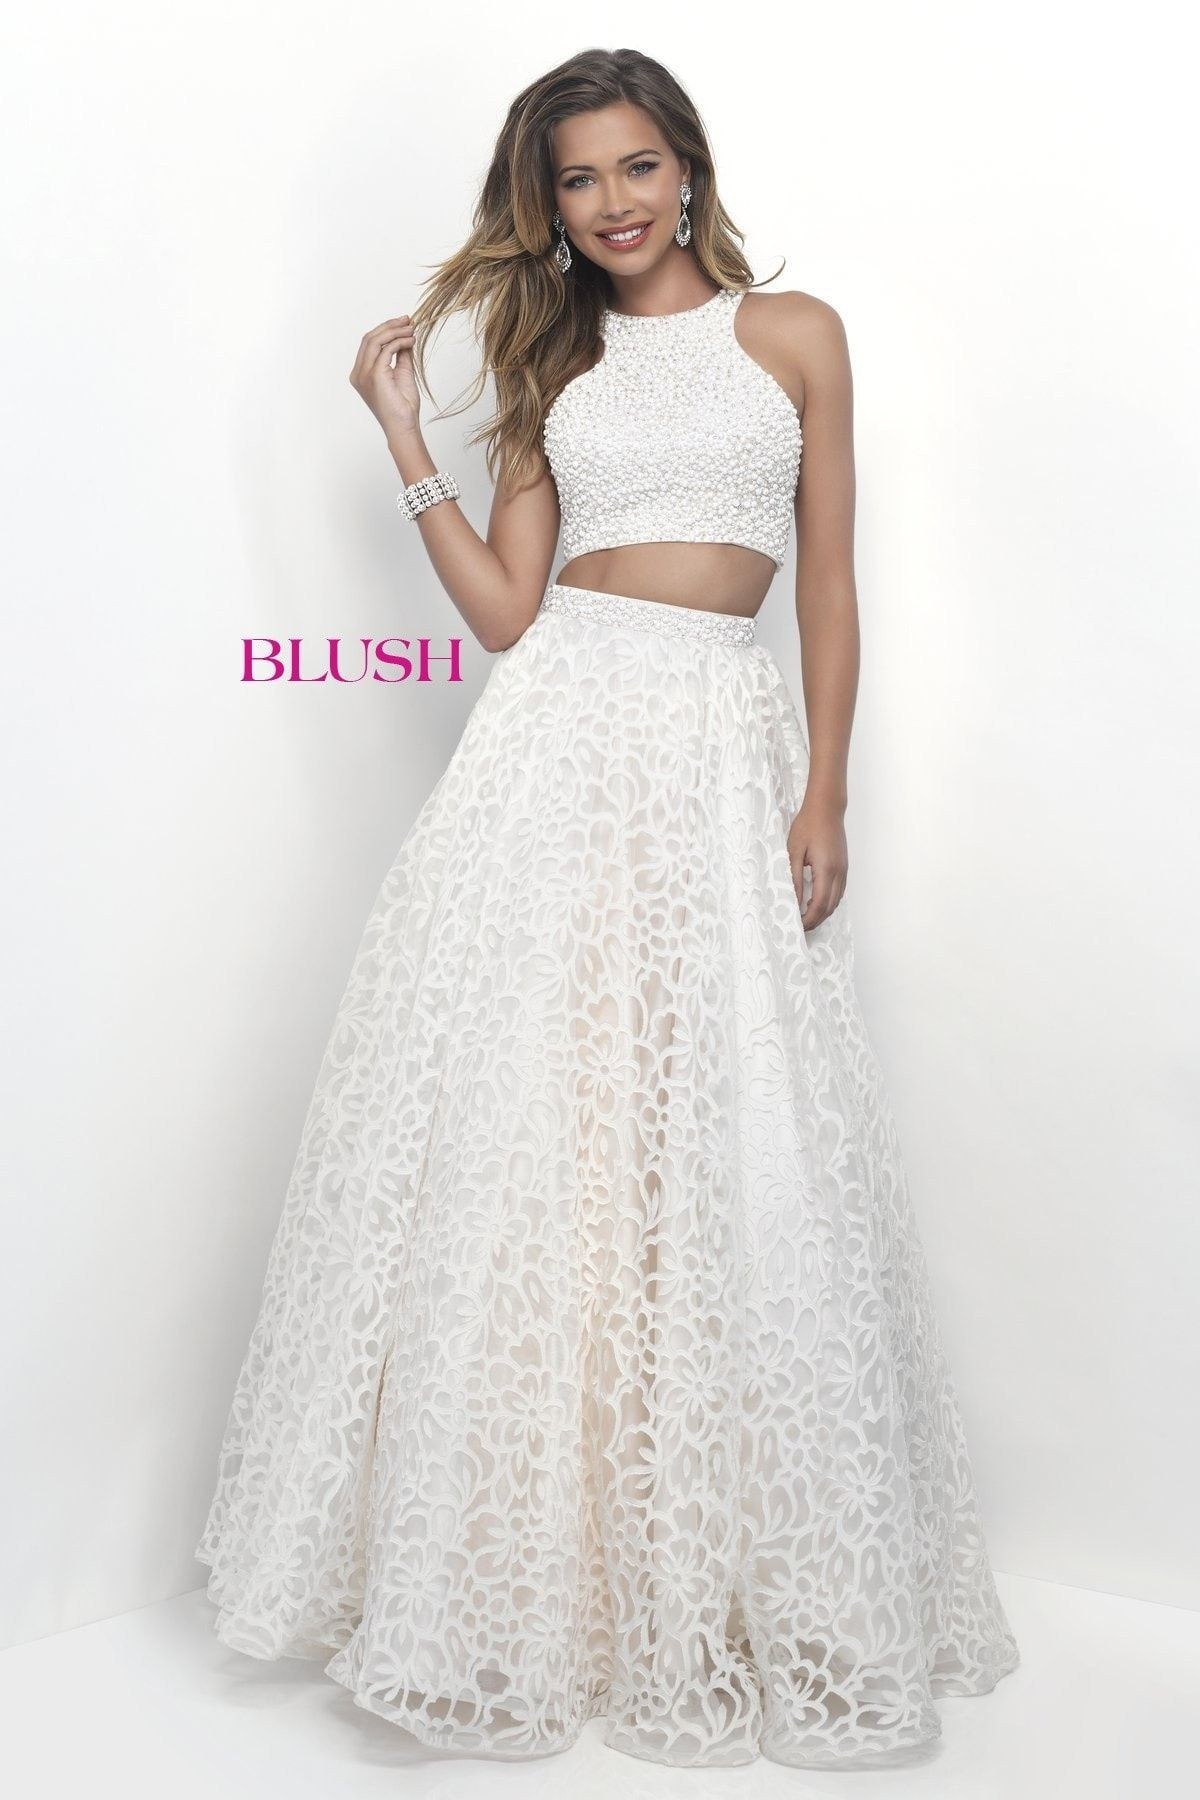 Pink by Blush 5600 Cream Open Back Two-Piece Prom Dress | Τουαλέτες ...